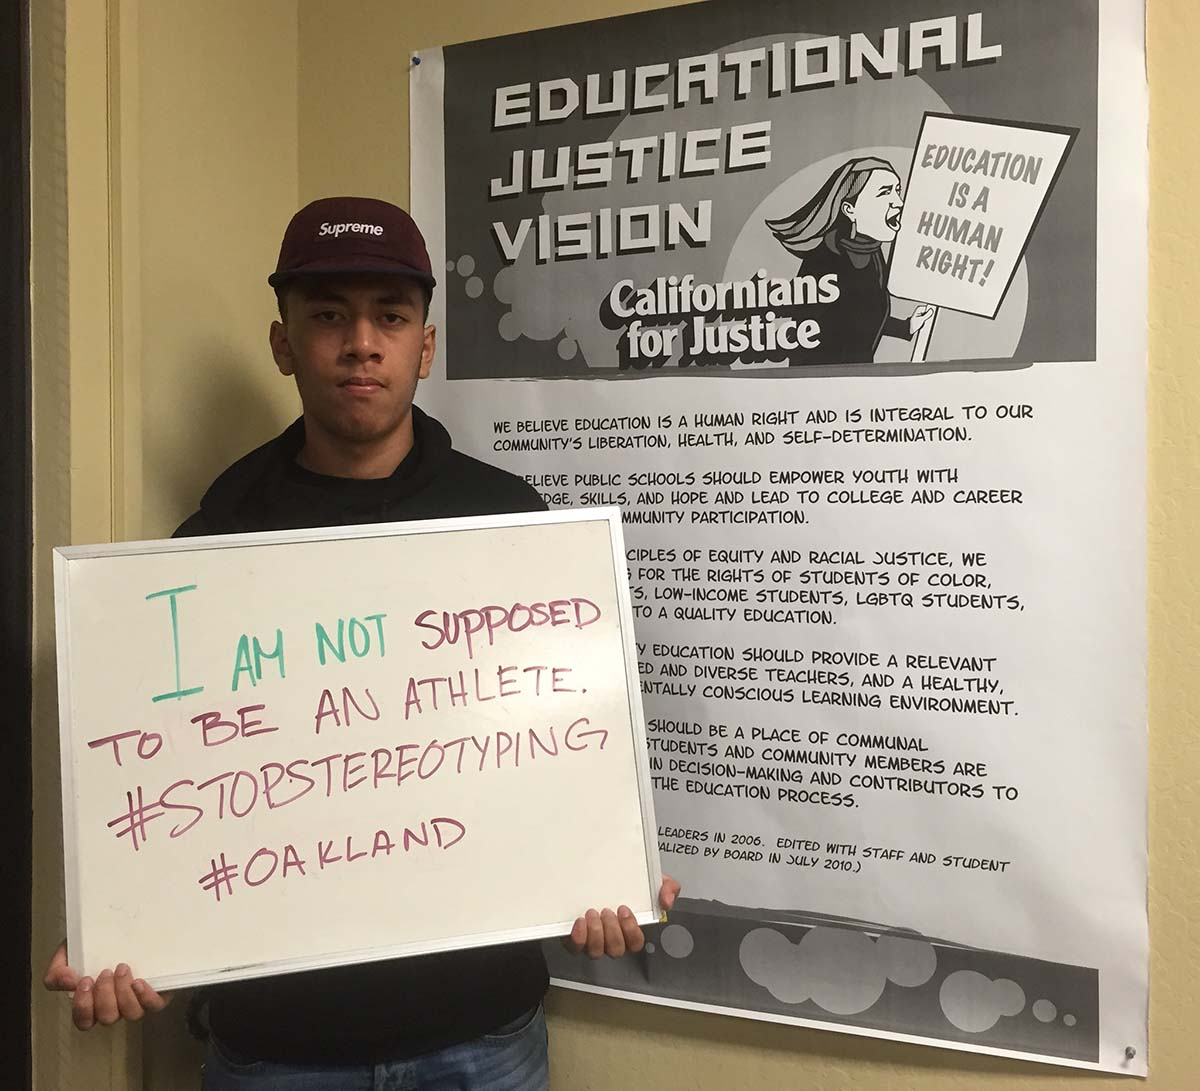 """A young man hold out a sign that says """"I'm not supposed to be an athlete"""" as part of the """"Flip the Frame"""" campaign to challenge the damaging assumptions imposed on Black and Brown youth. 